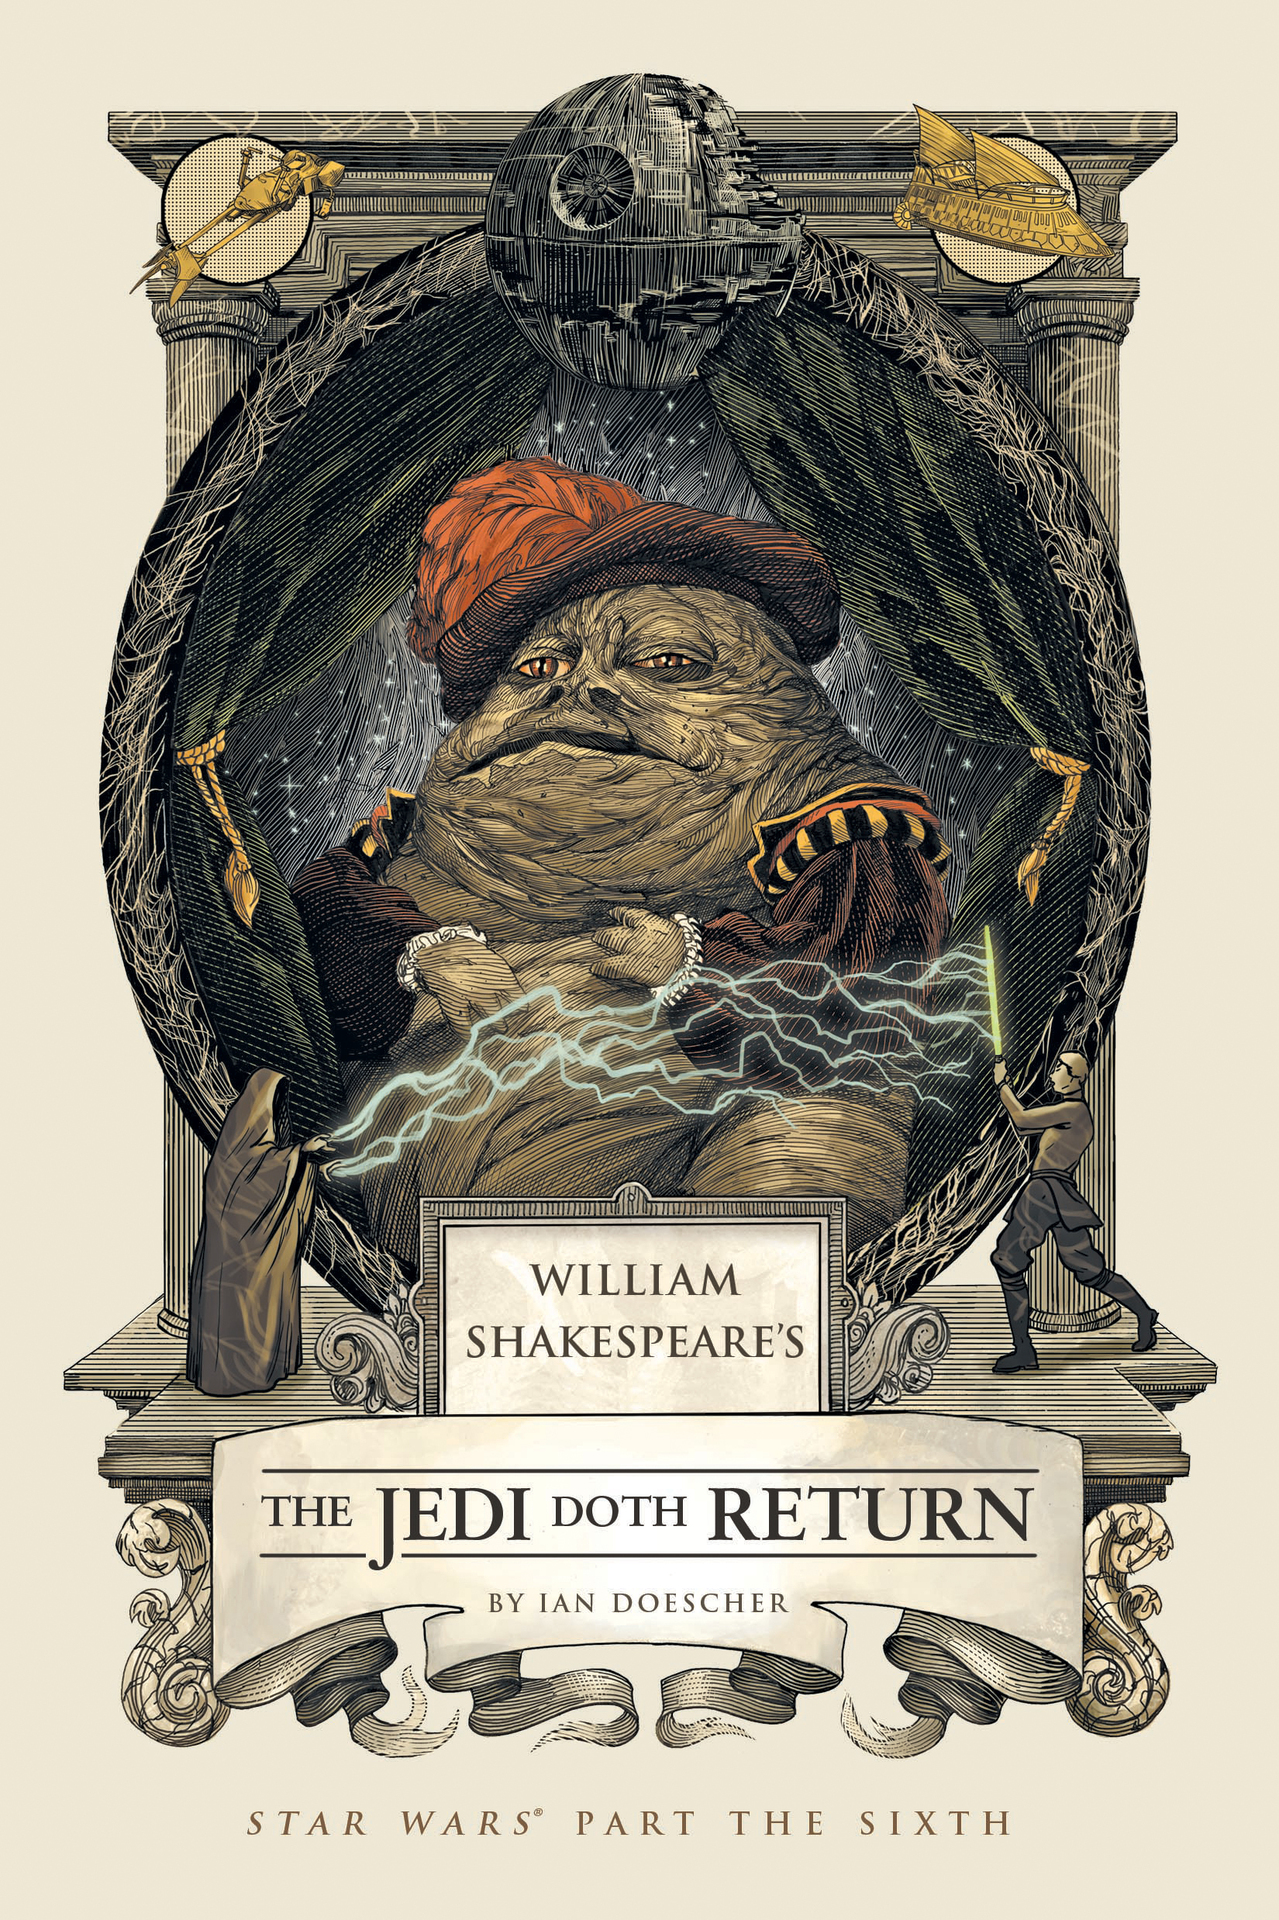 The Jedi Doth Return